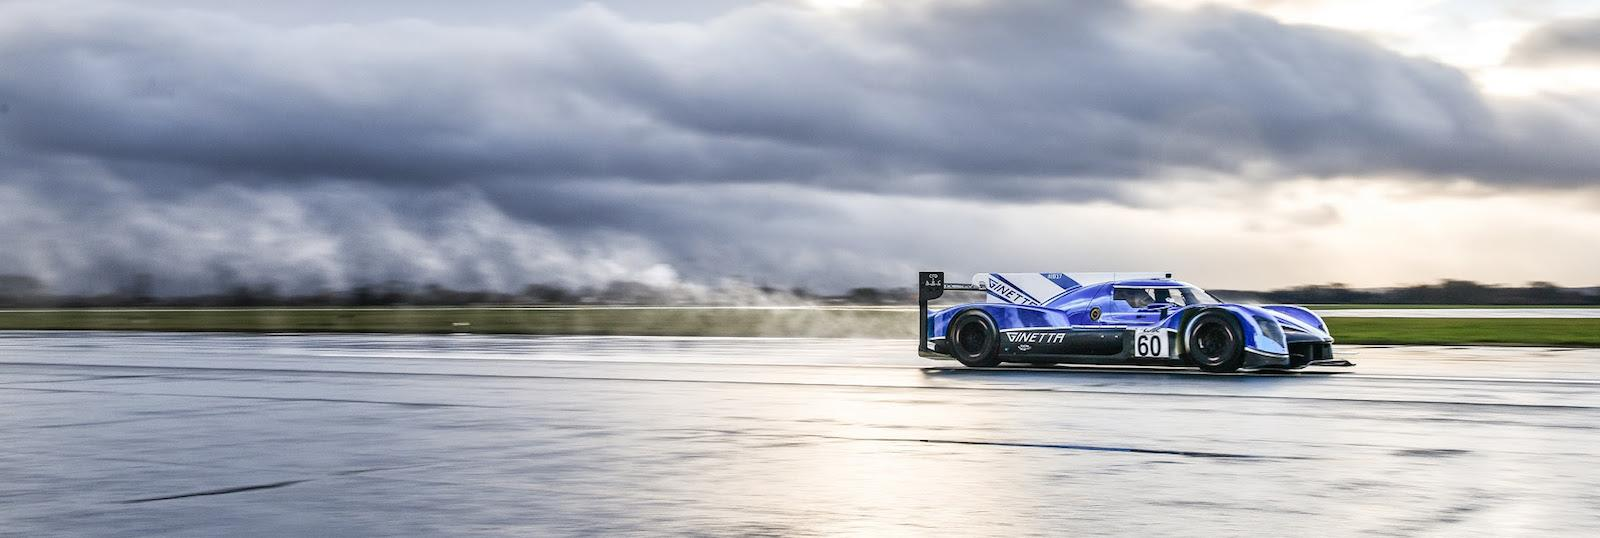 Ginetta completes first runs with new LMP1 car